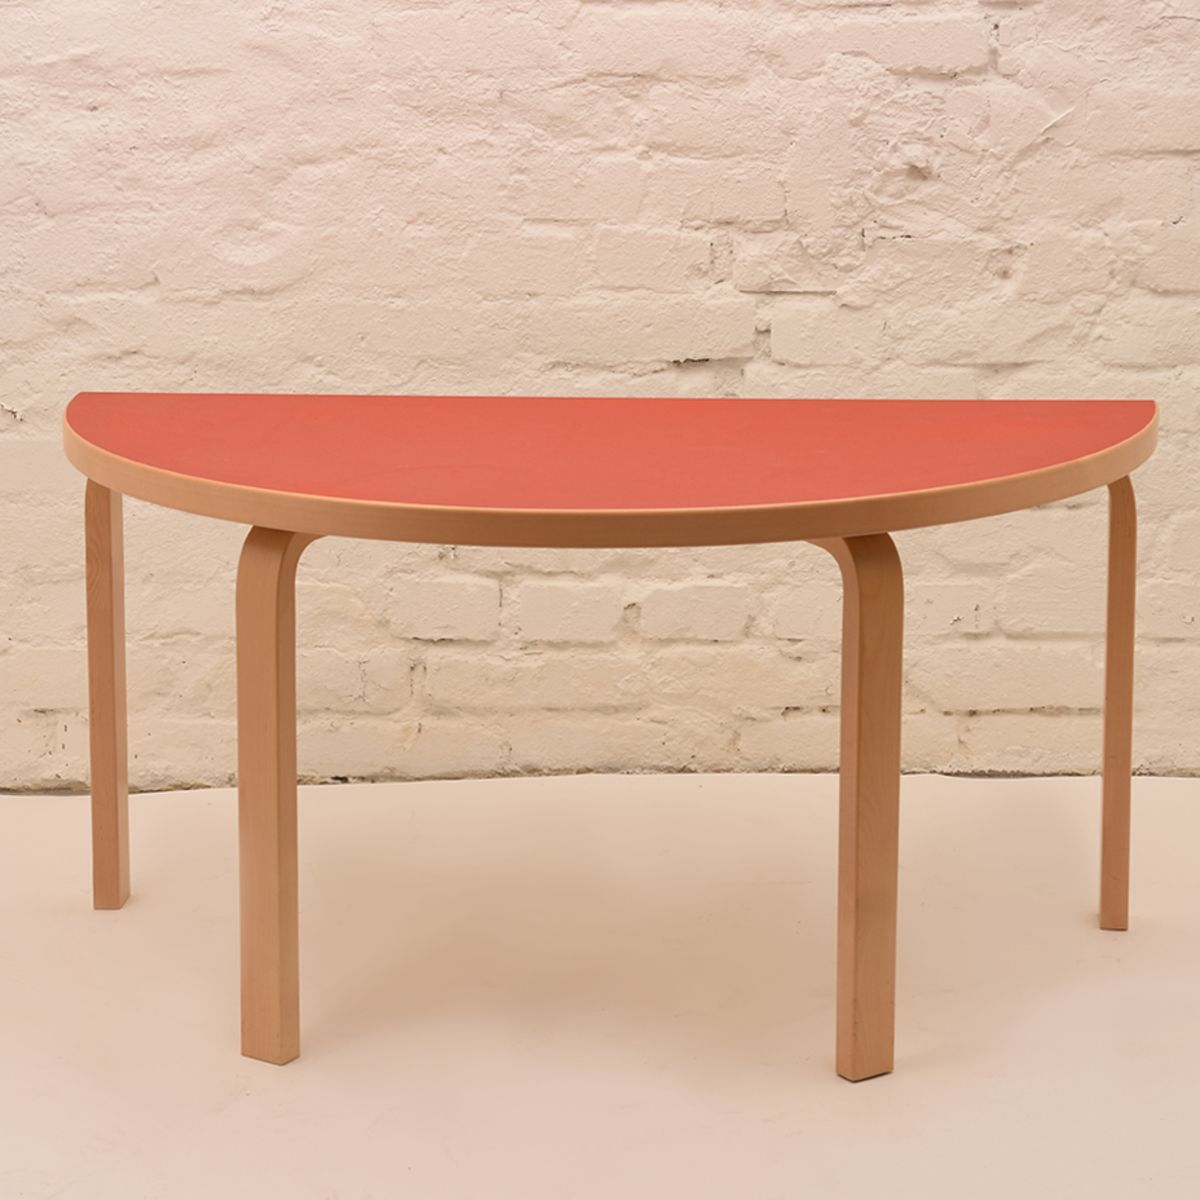 Alvar-Aalto_Half-Round-Kids-Table